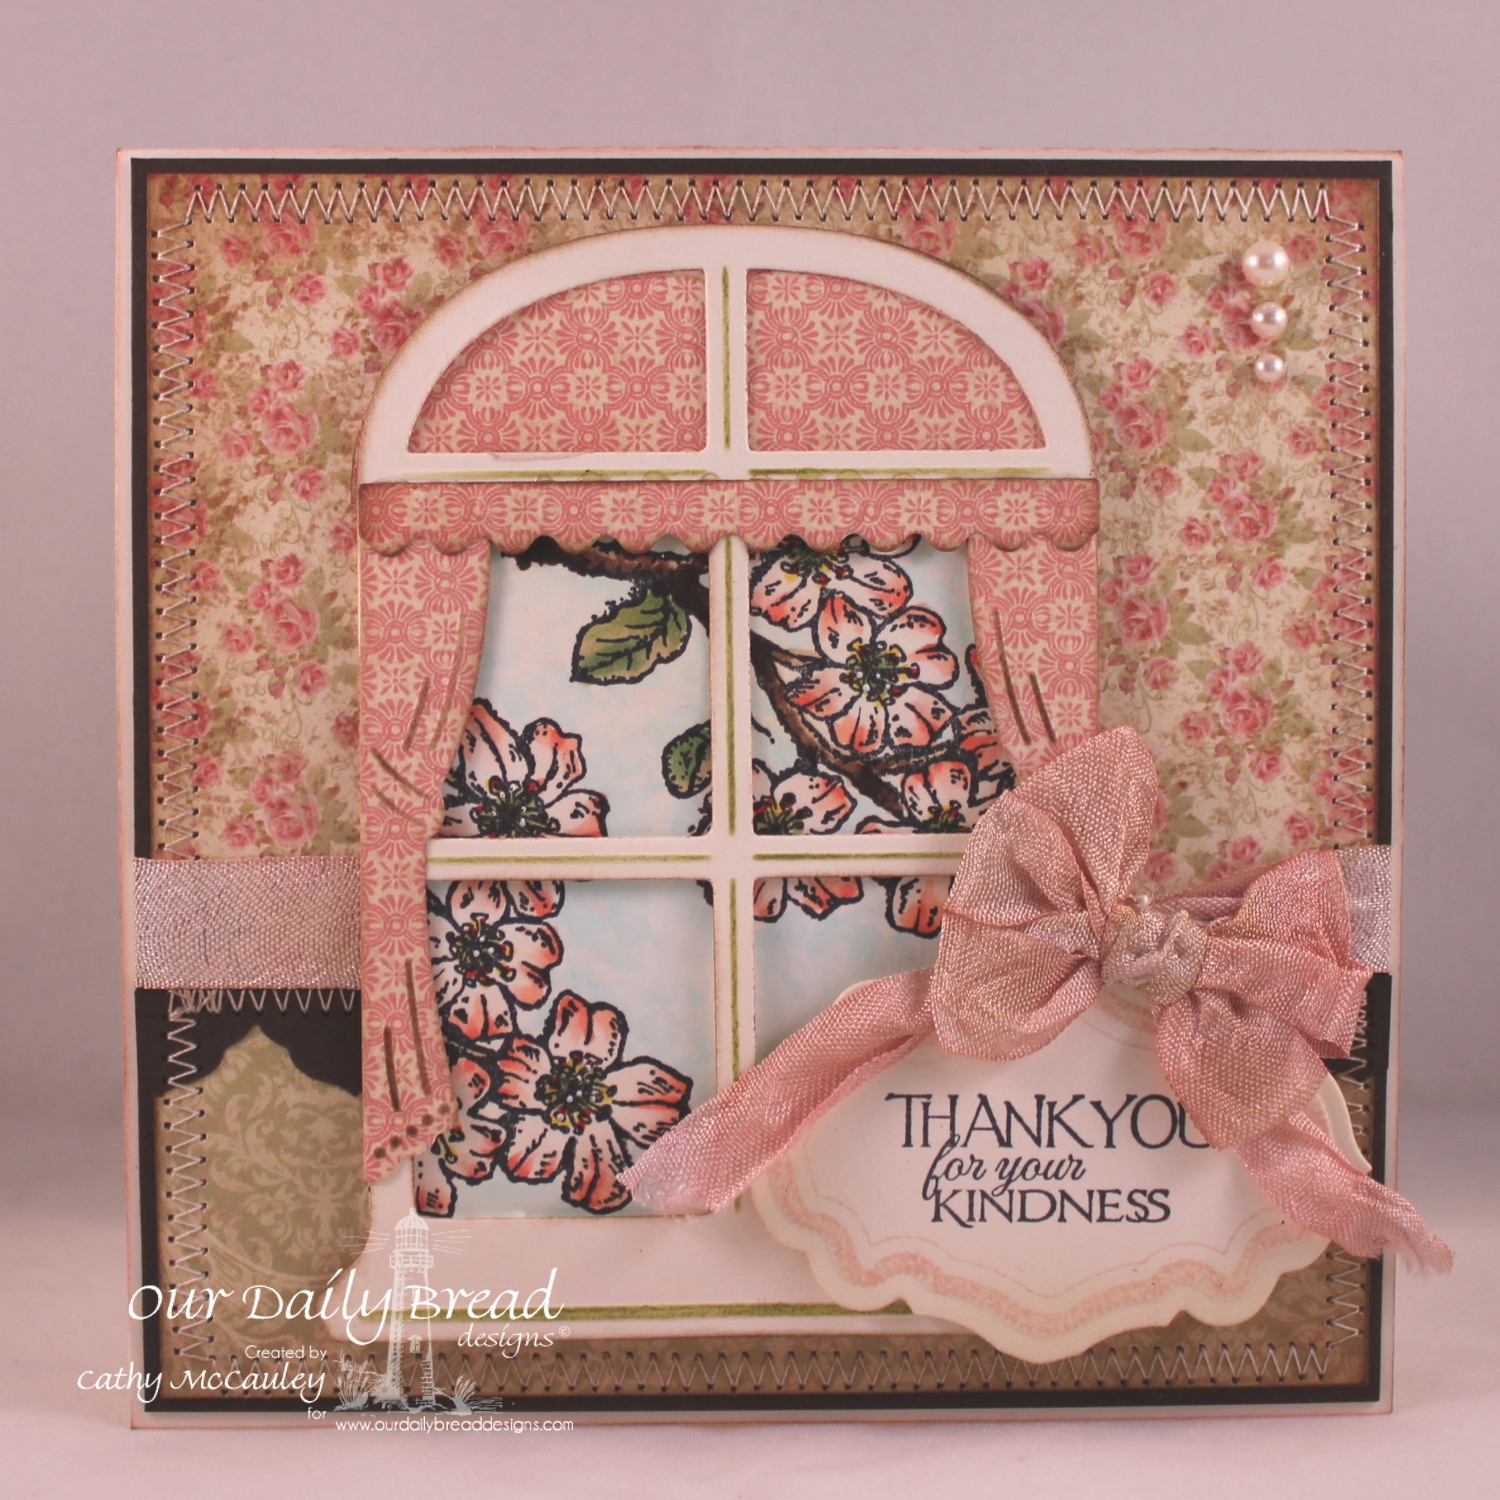 Stamps - Our Daily Bread Designs Cherry Blossom, ODBD Custom Antique Labels and Border Dies, ODBD Custom Window Die,ODBD Blushing Rose Paper Collection